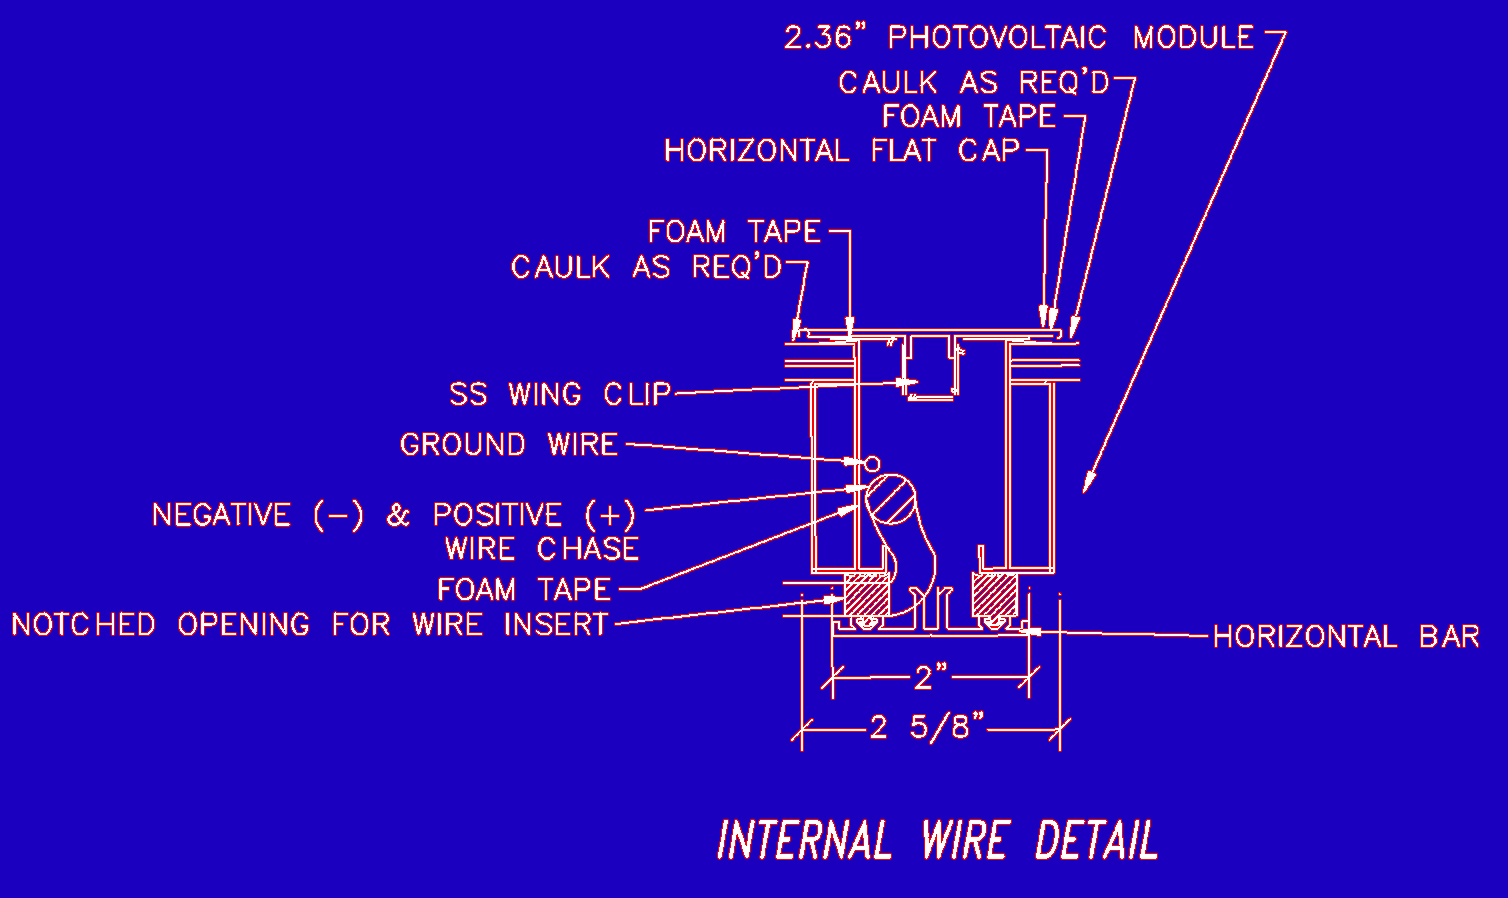 System Images Of Wiring Diagram Of Solar Panel System Wire Diagram